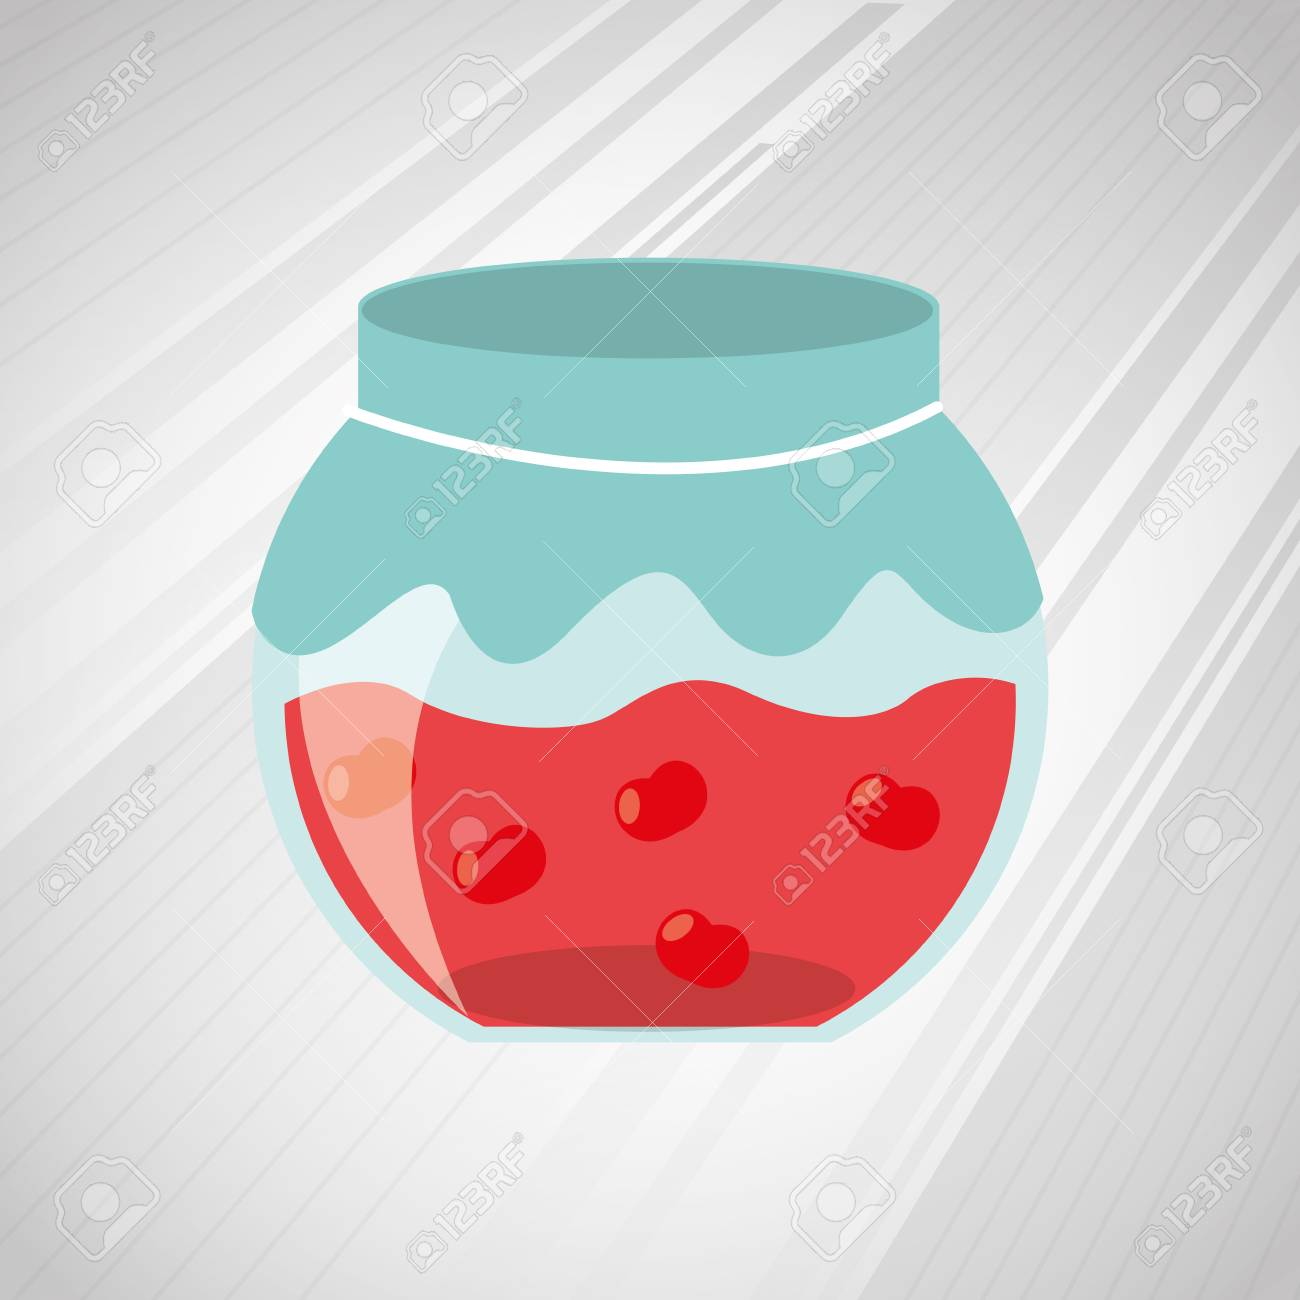 Homemade Food Design Vector Illustration Eps10 Graphic Royalty Free